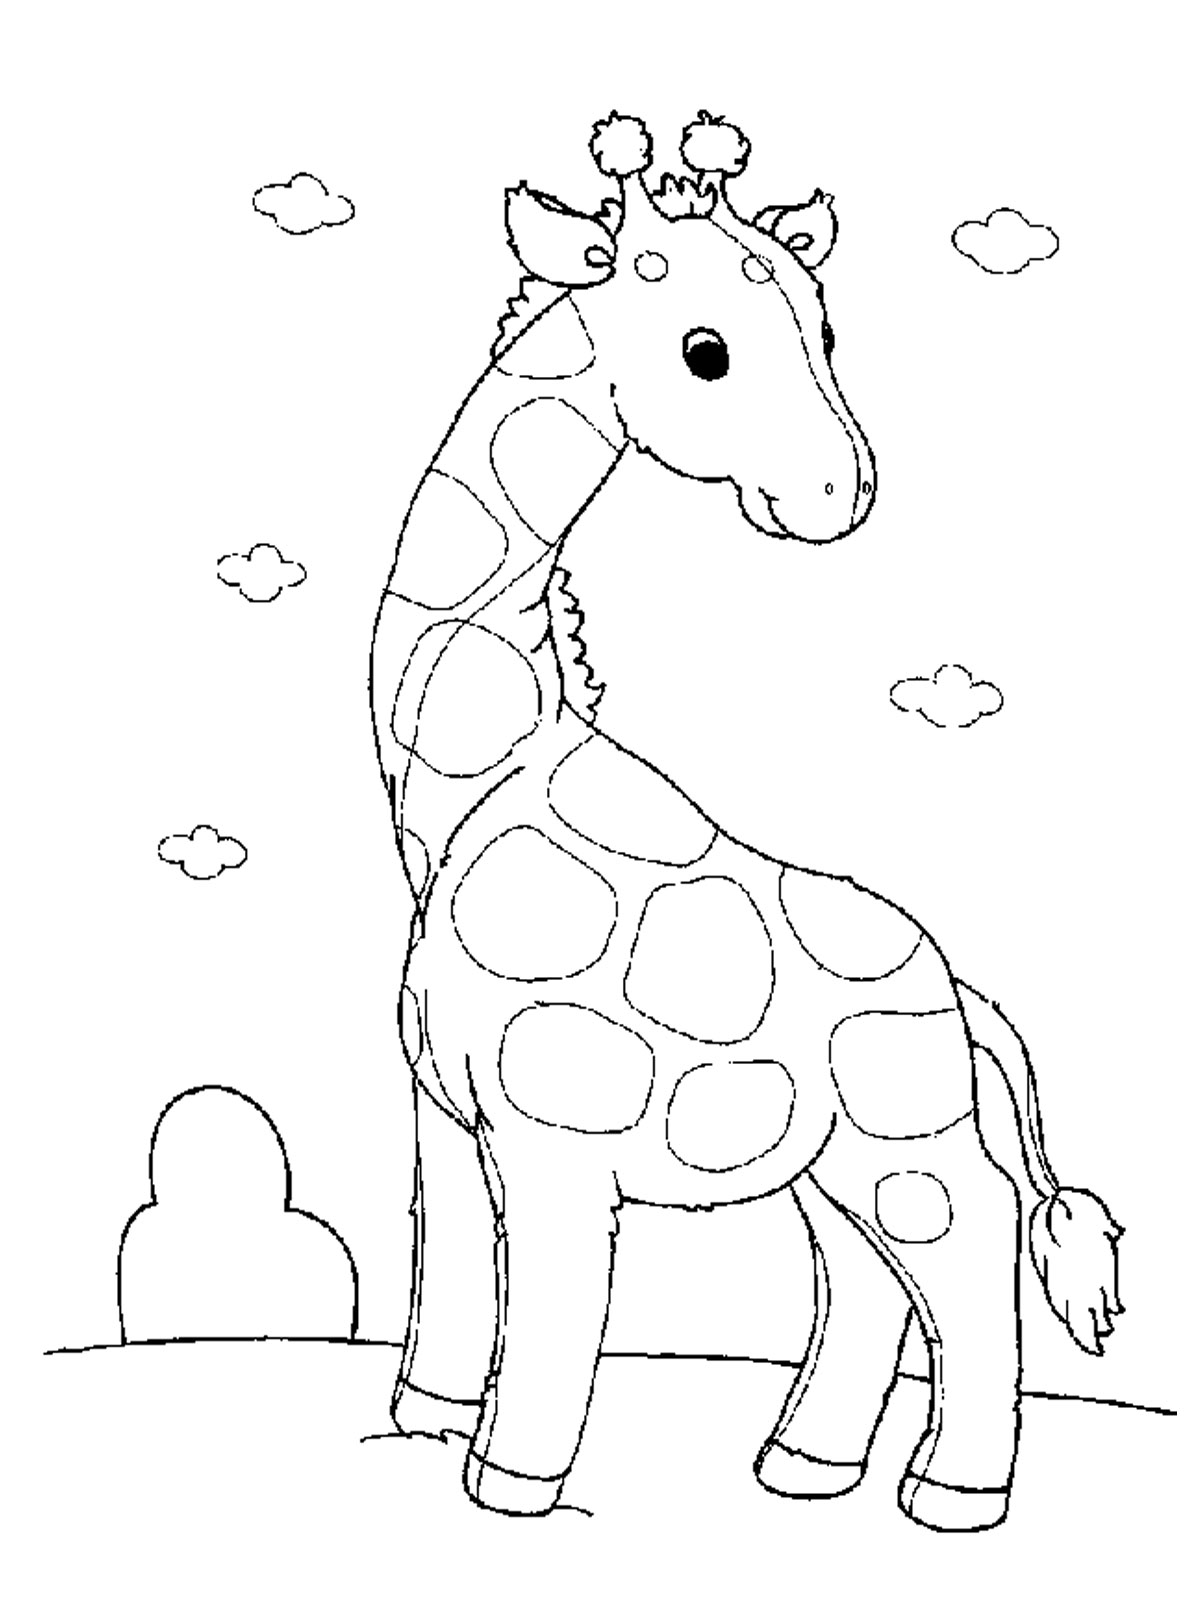 Free printable giraffe coloring pages for kids for Animal coloring pages printable free